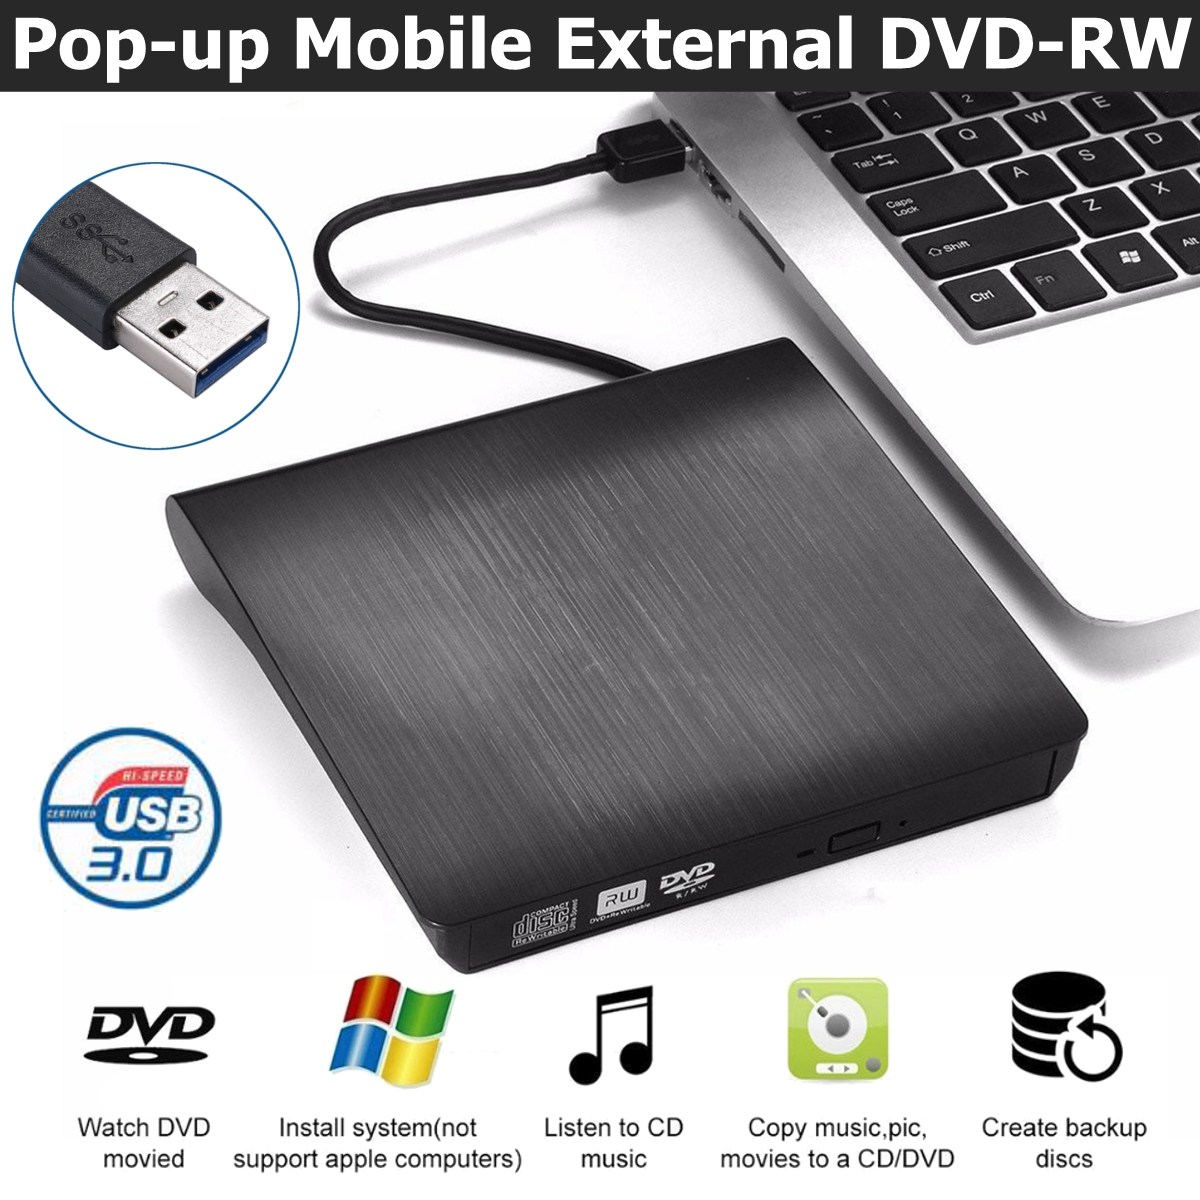 Slim External DVD Drive USB 3.0 DVD-RW CD-RW Combo Drive Burner Reader Player Recorder Portatil For Laptop